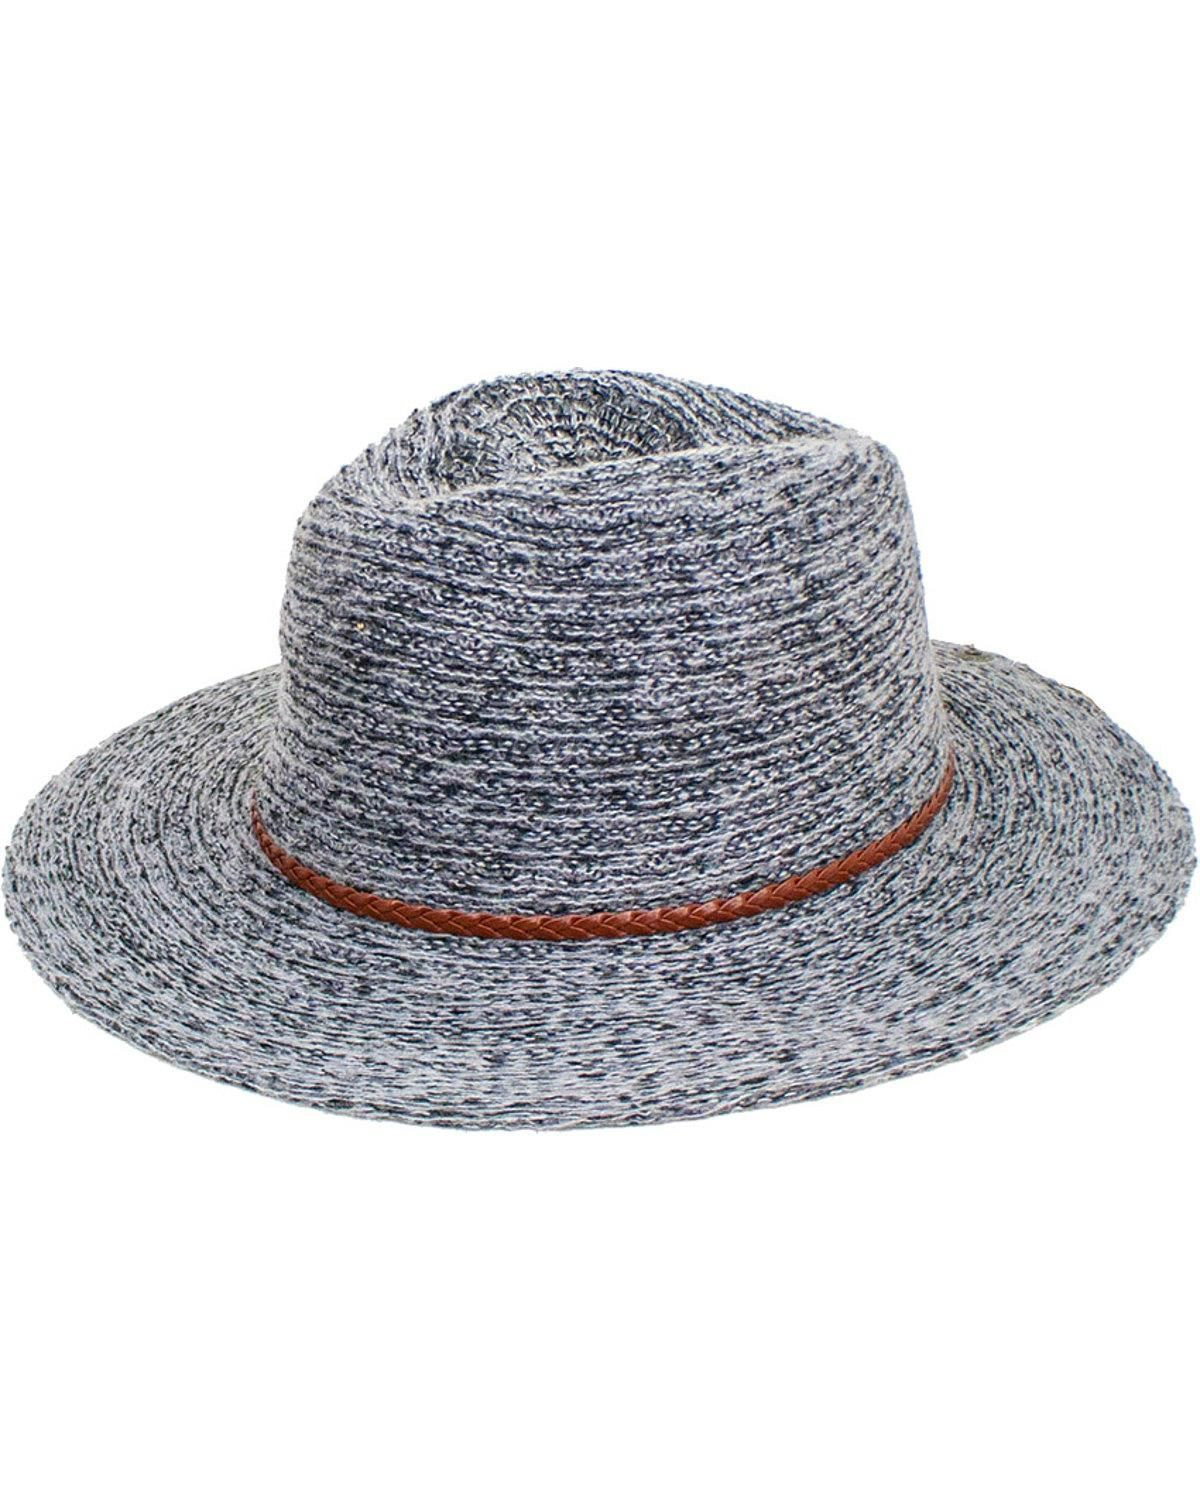 9bc57003b3790 peter grimm woven wool hat with brim